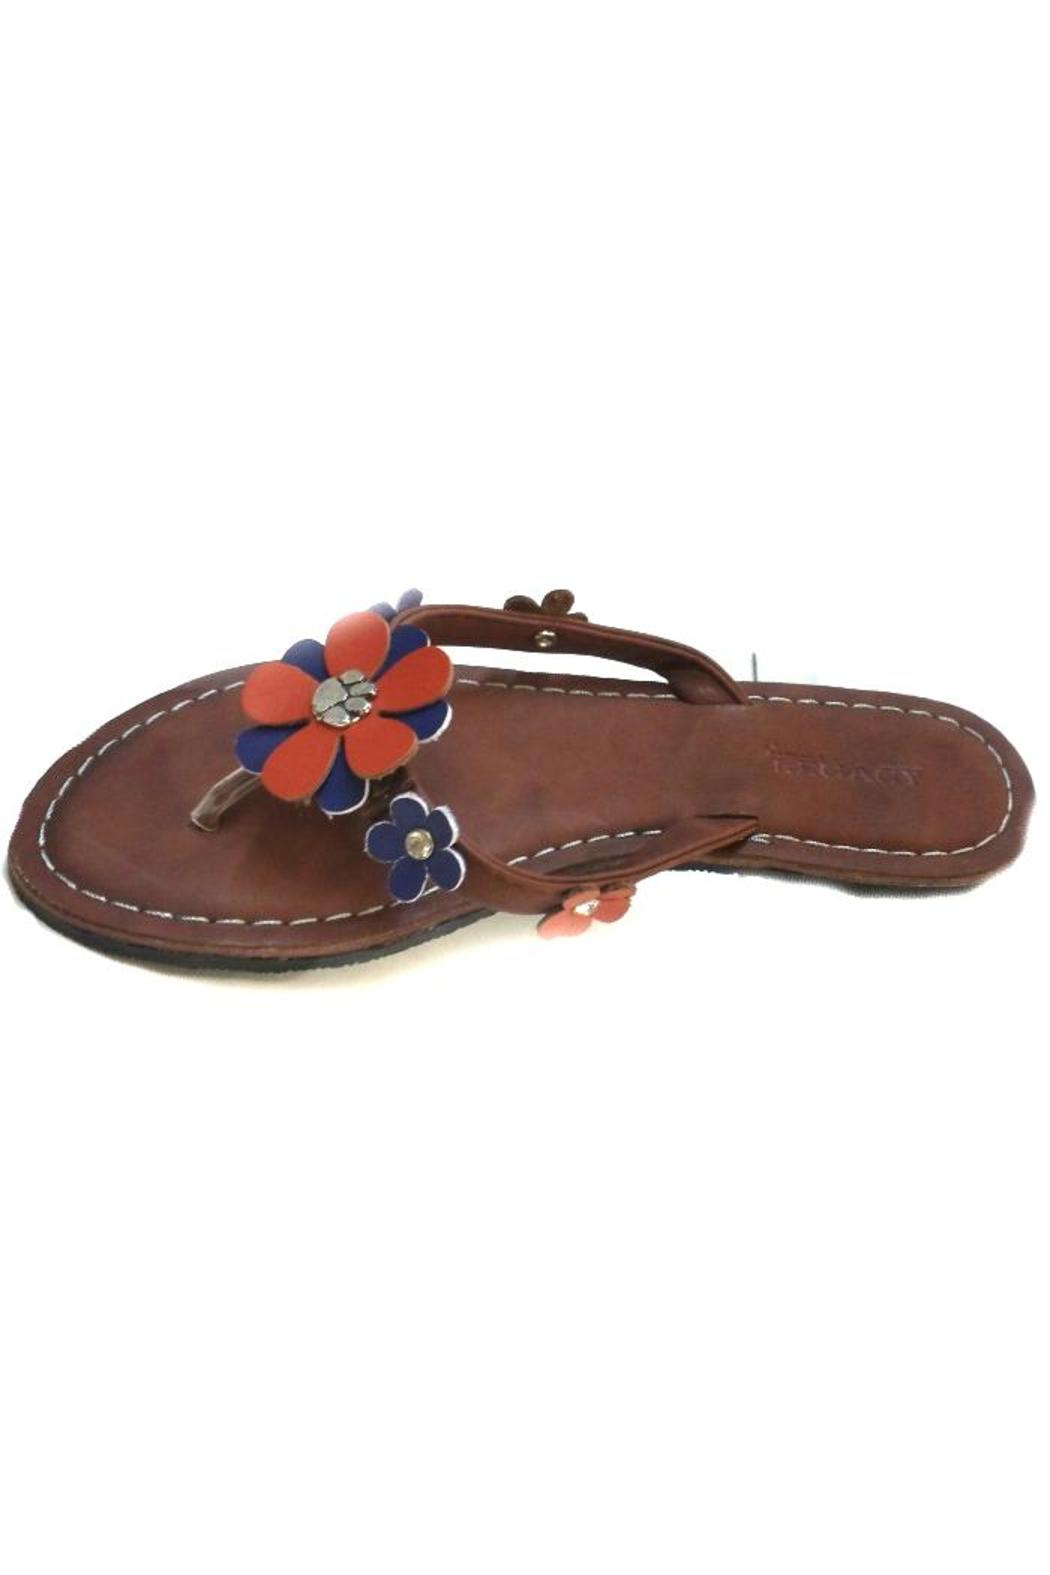 Legacy Athletic Clemson Tiger-Leather Sandals - Main Image